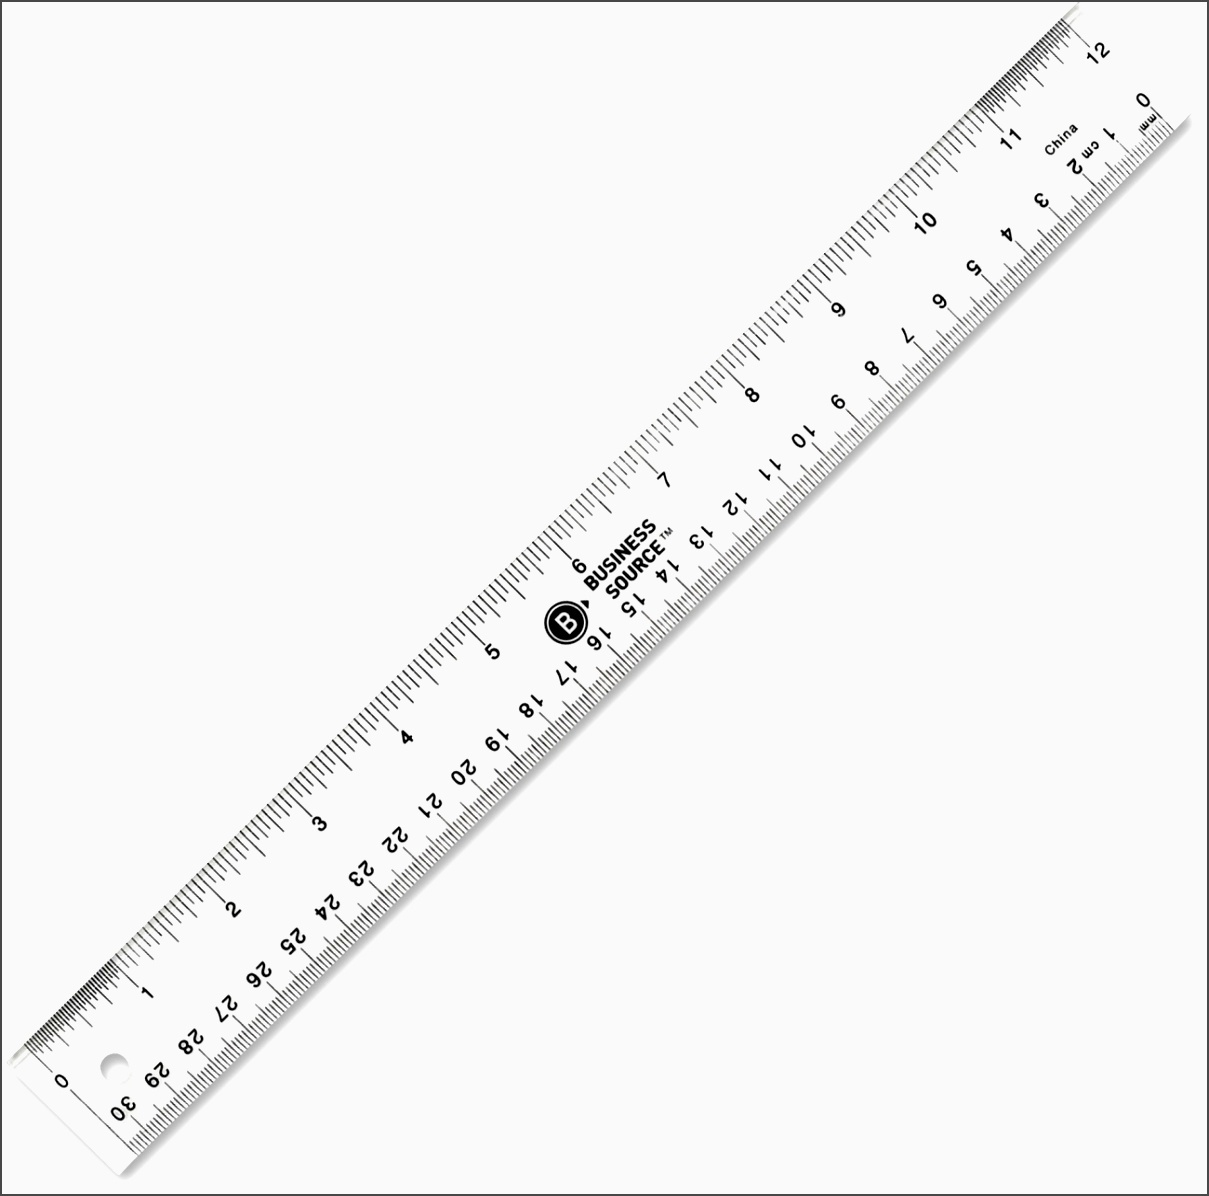 69 Free Printable Rulers   Kittybabylove - Free Printable Ruler